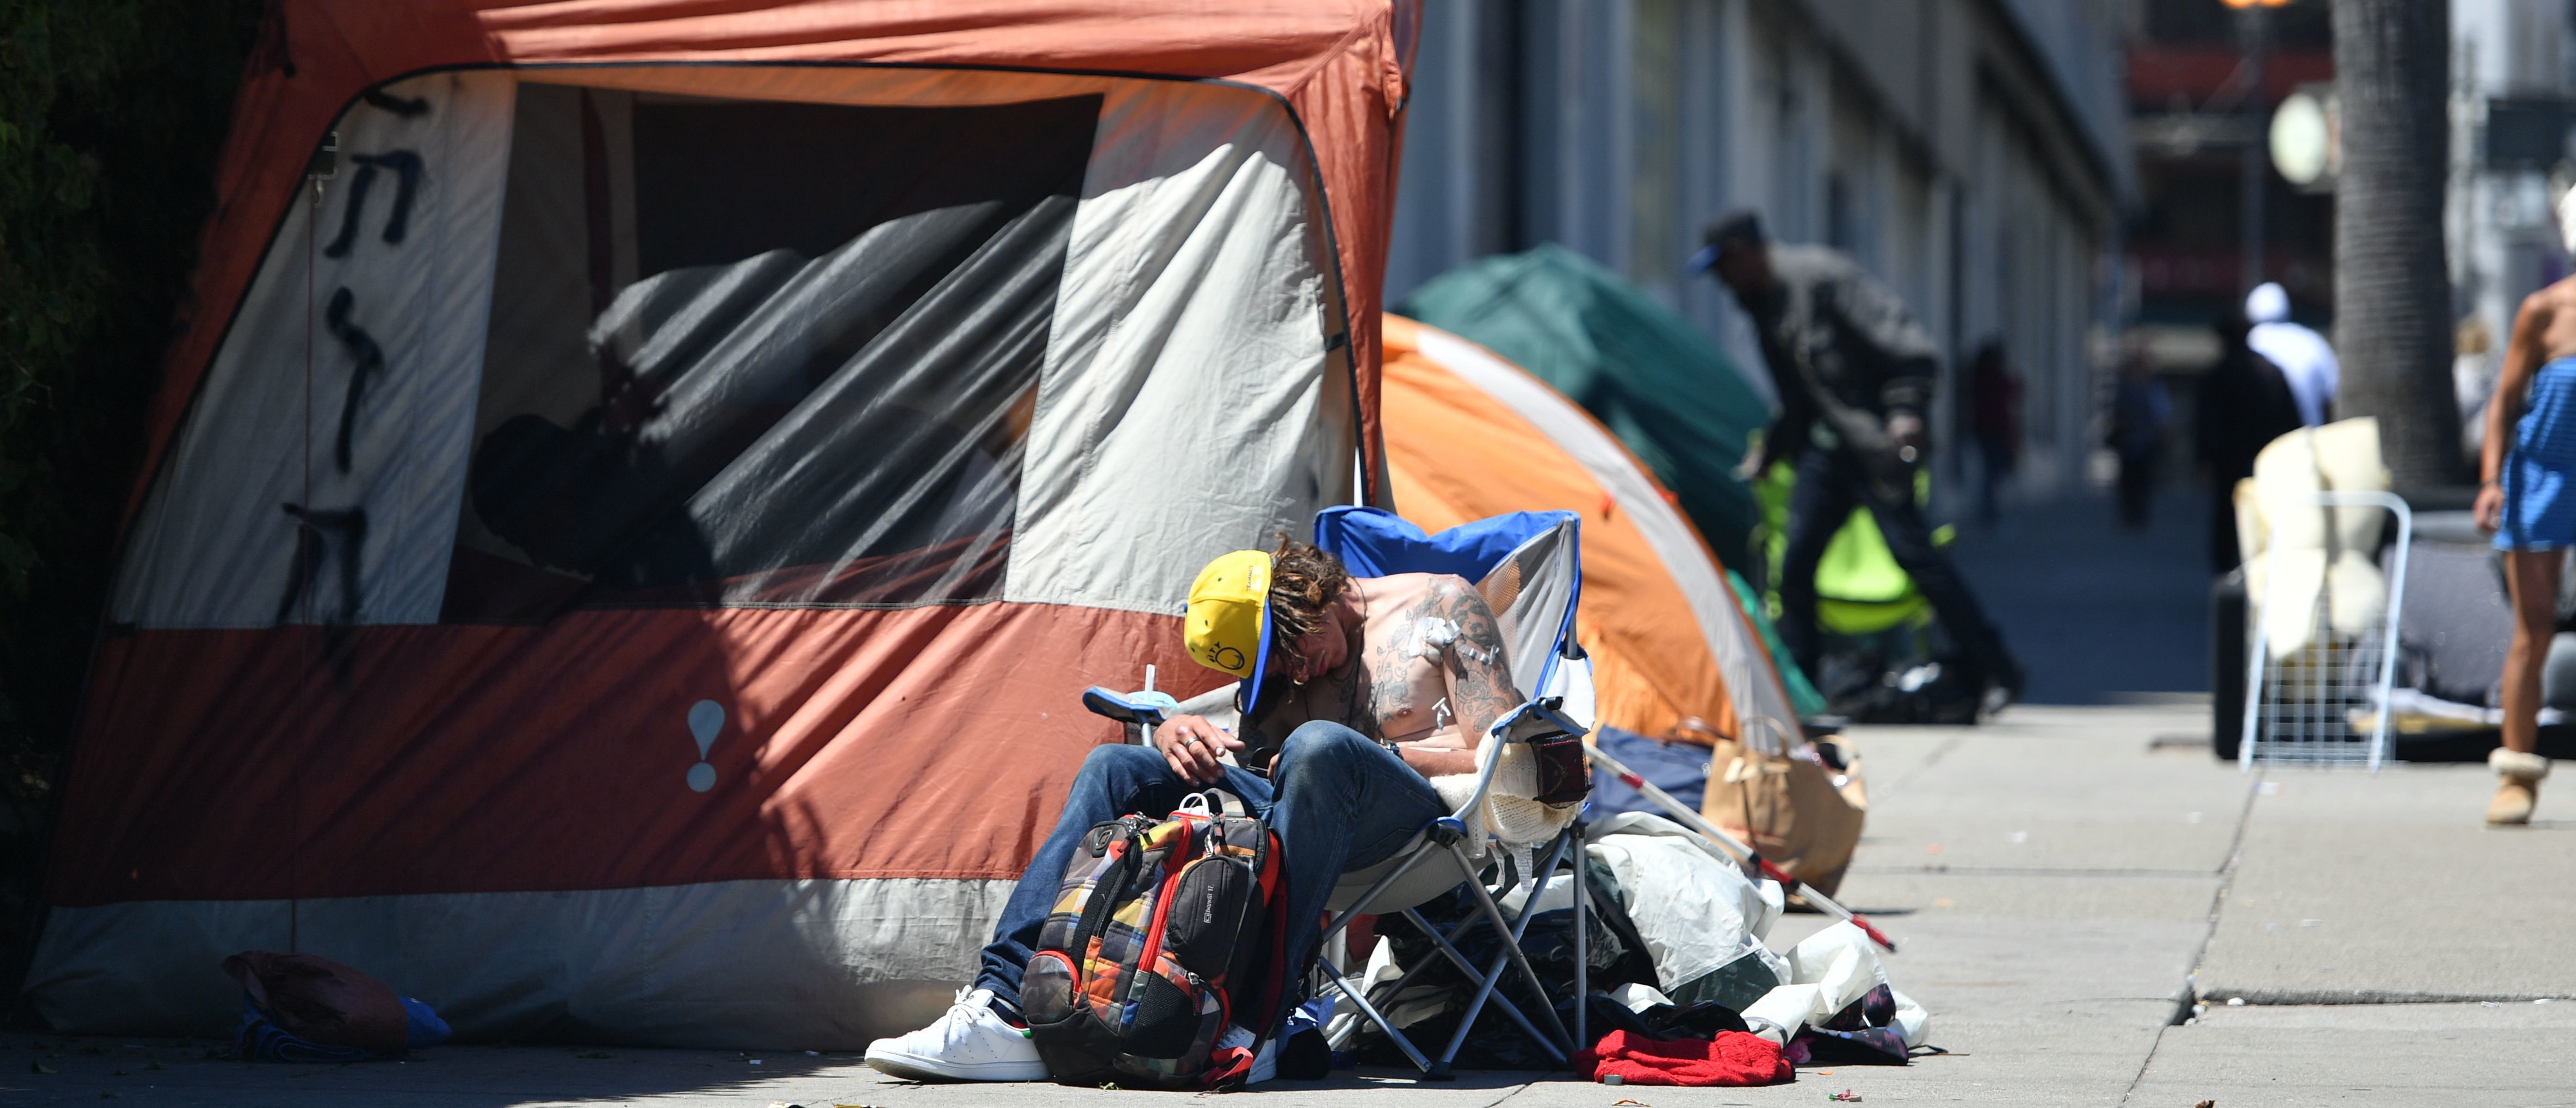 A homeless man sleeps in front of his tent along Van Ness Avenue in downtown San Francisco, California on June, 27, 2016. Homelessness is on the rise in the city irking residents and bringing the problem under a spotlight. (JOSH EDELSON/AFP via Getty Images)